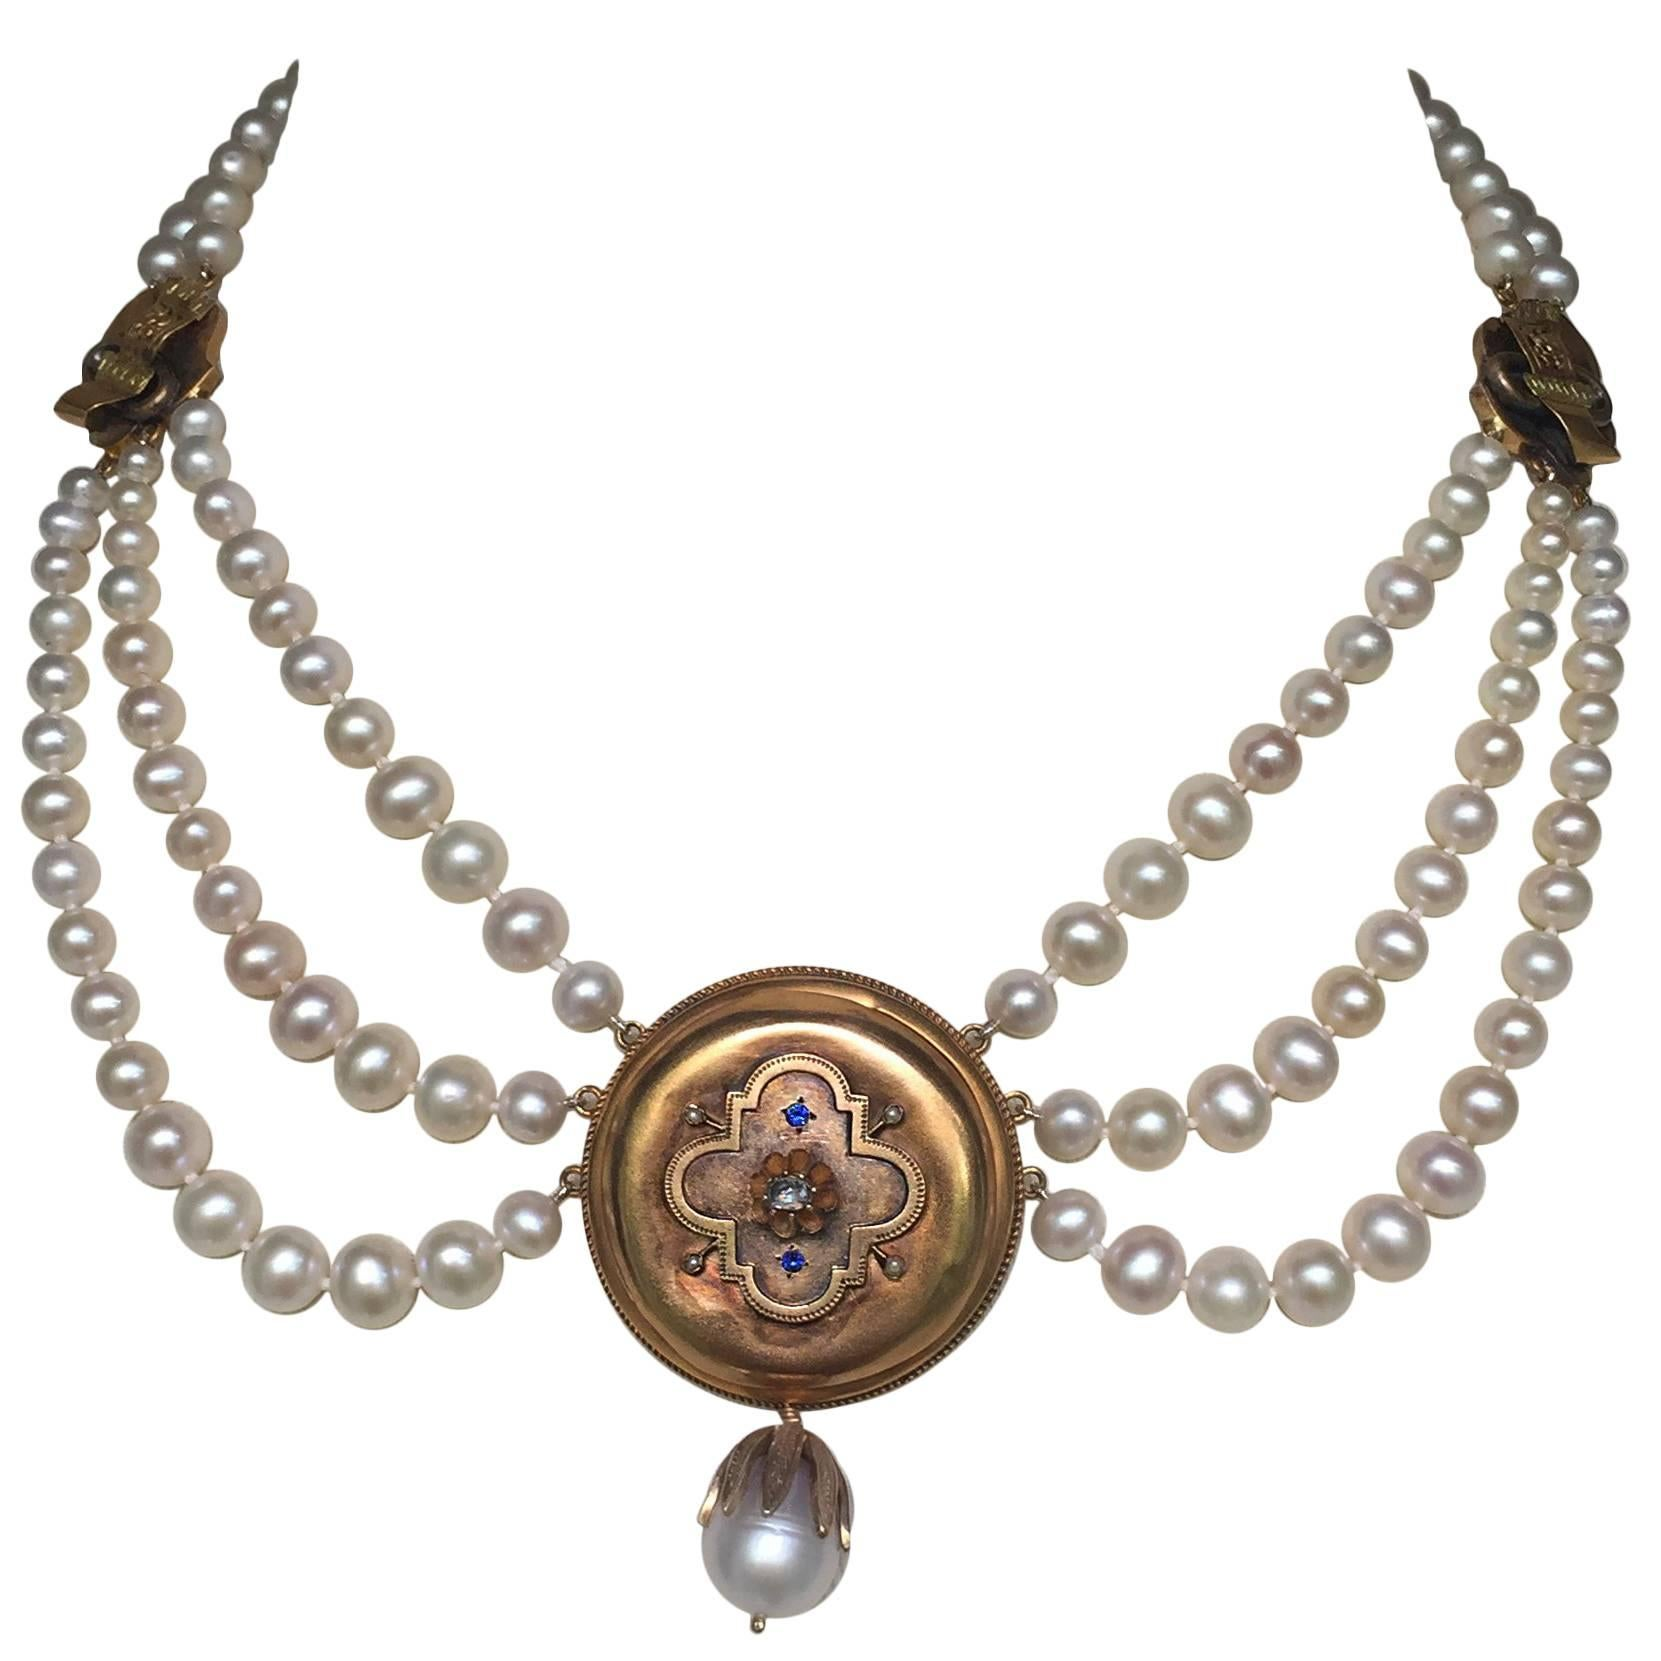 Marina J. Graduated Pearl Necklace with Unique 14K Gold Vintage Centerpiece